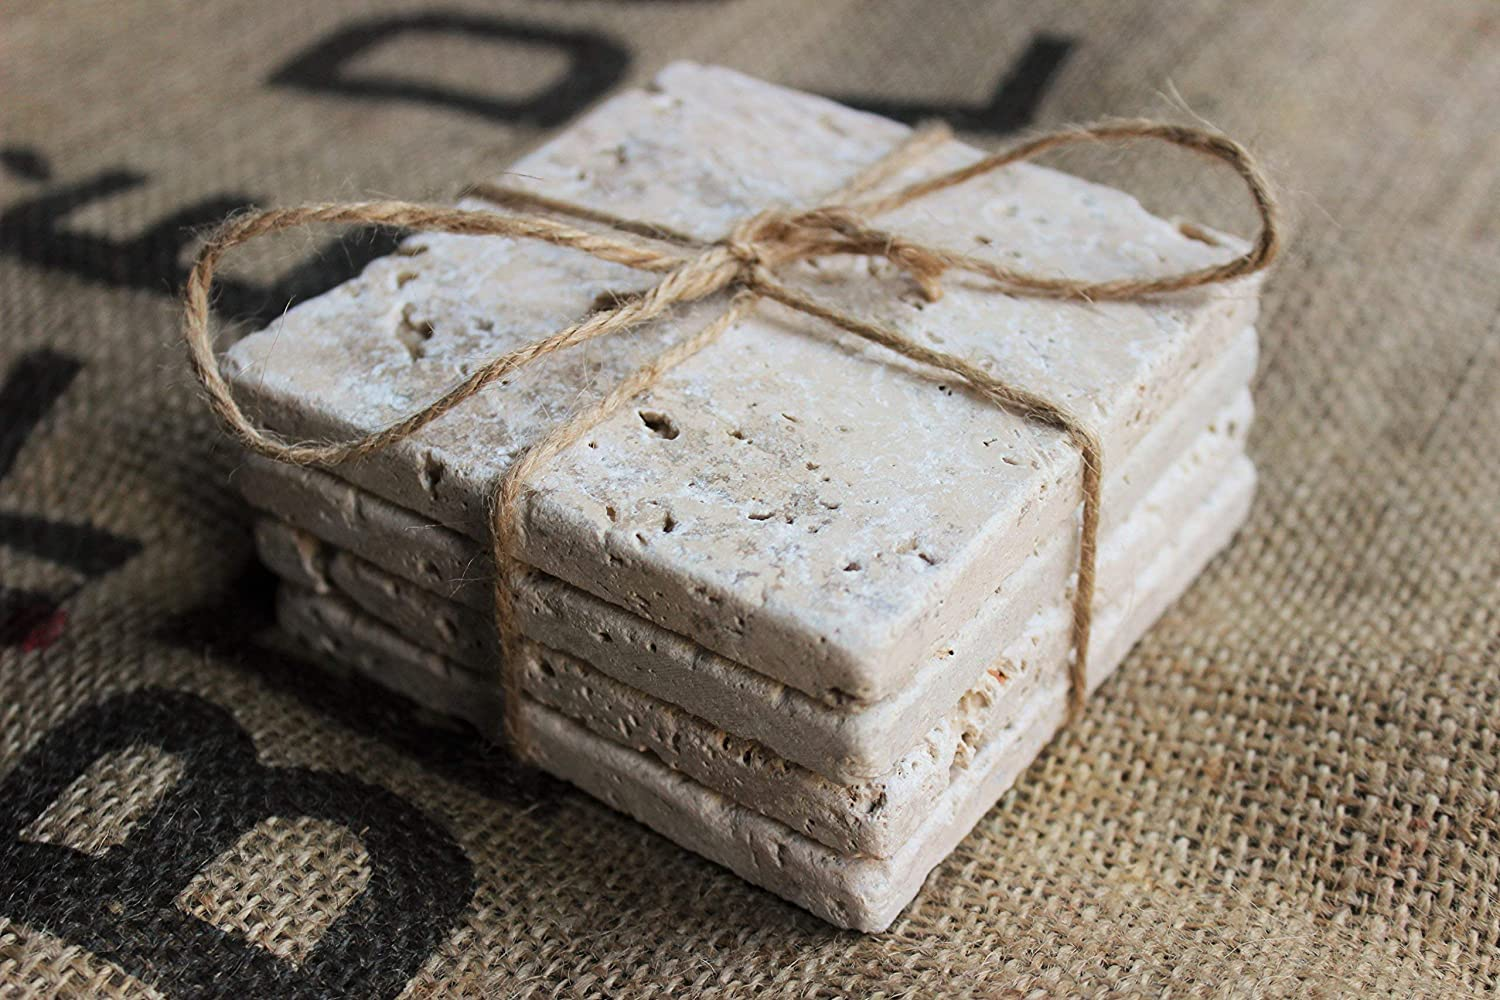 Set of 4 Absorbent Tile Coasters Plain Travertine Stone Drink Coasters